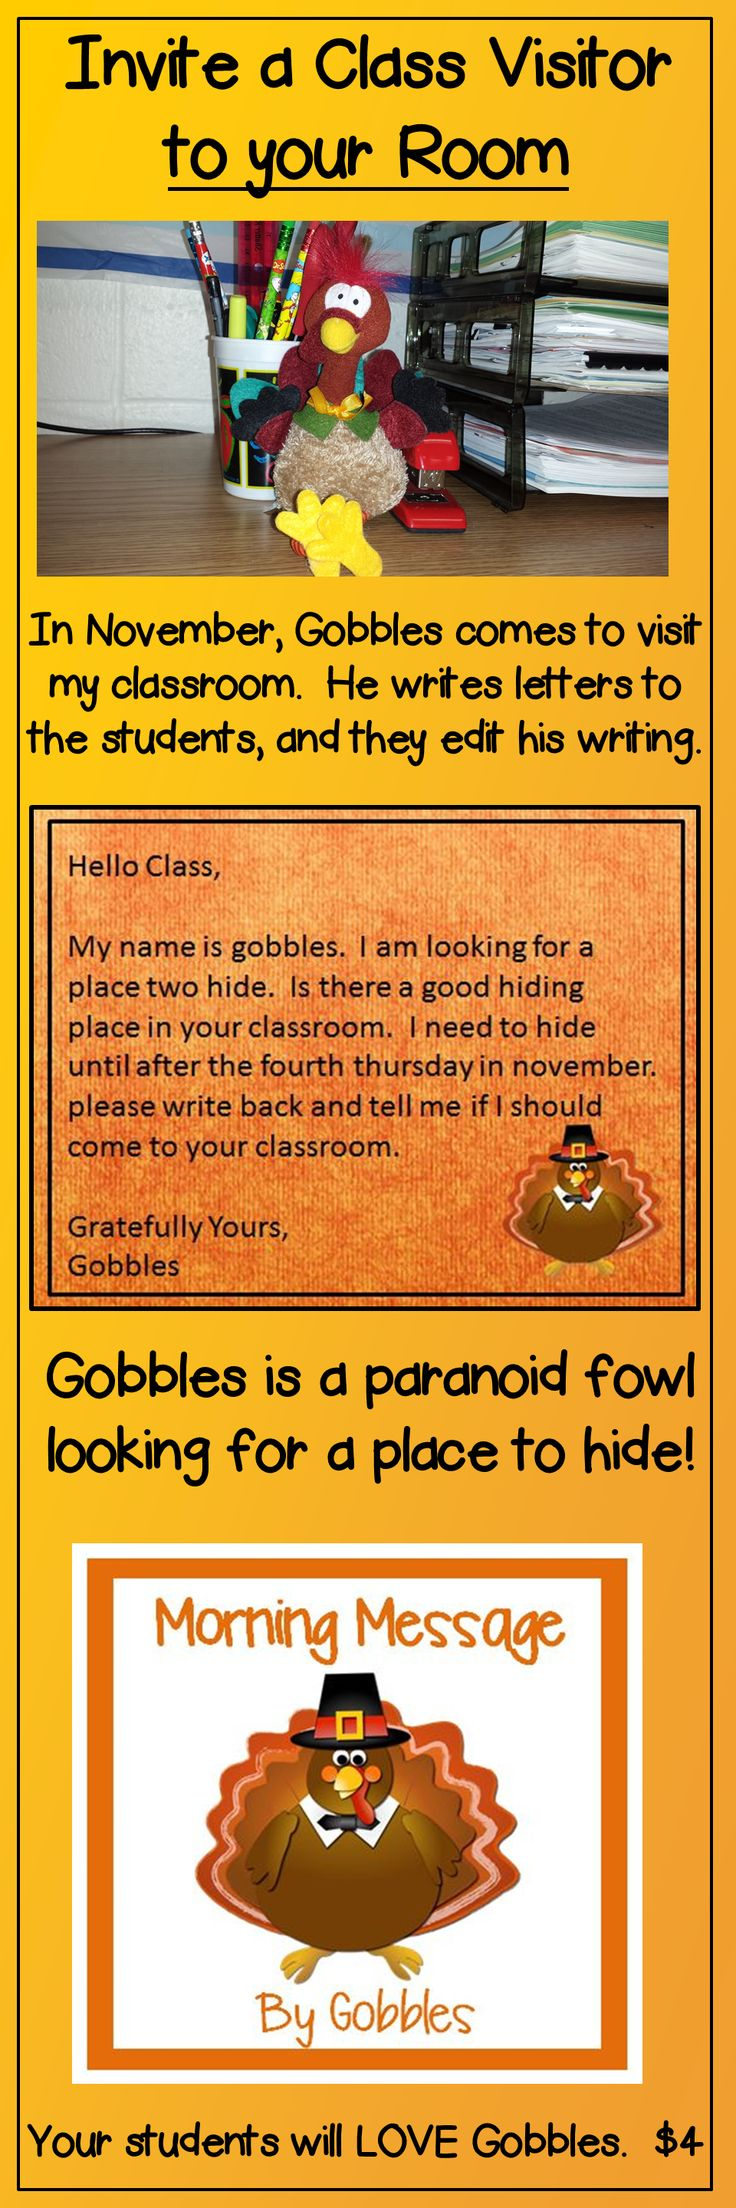 Gobbles will teach your students editing and daily oral language skills while hiding in your classroom during the month of November!